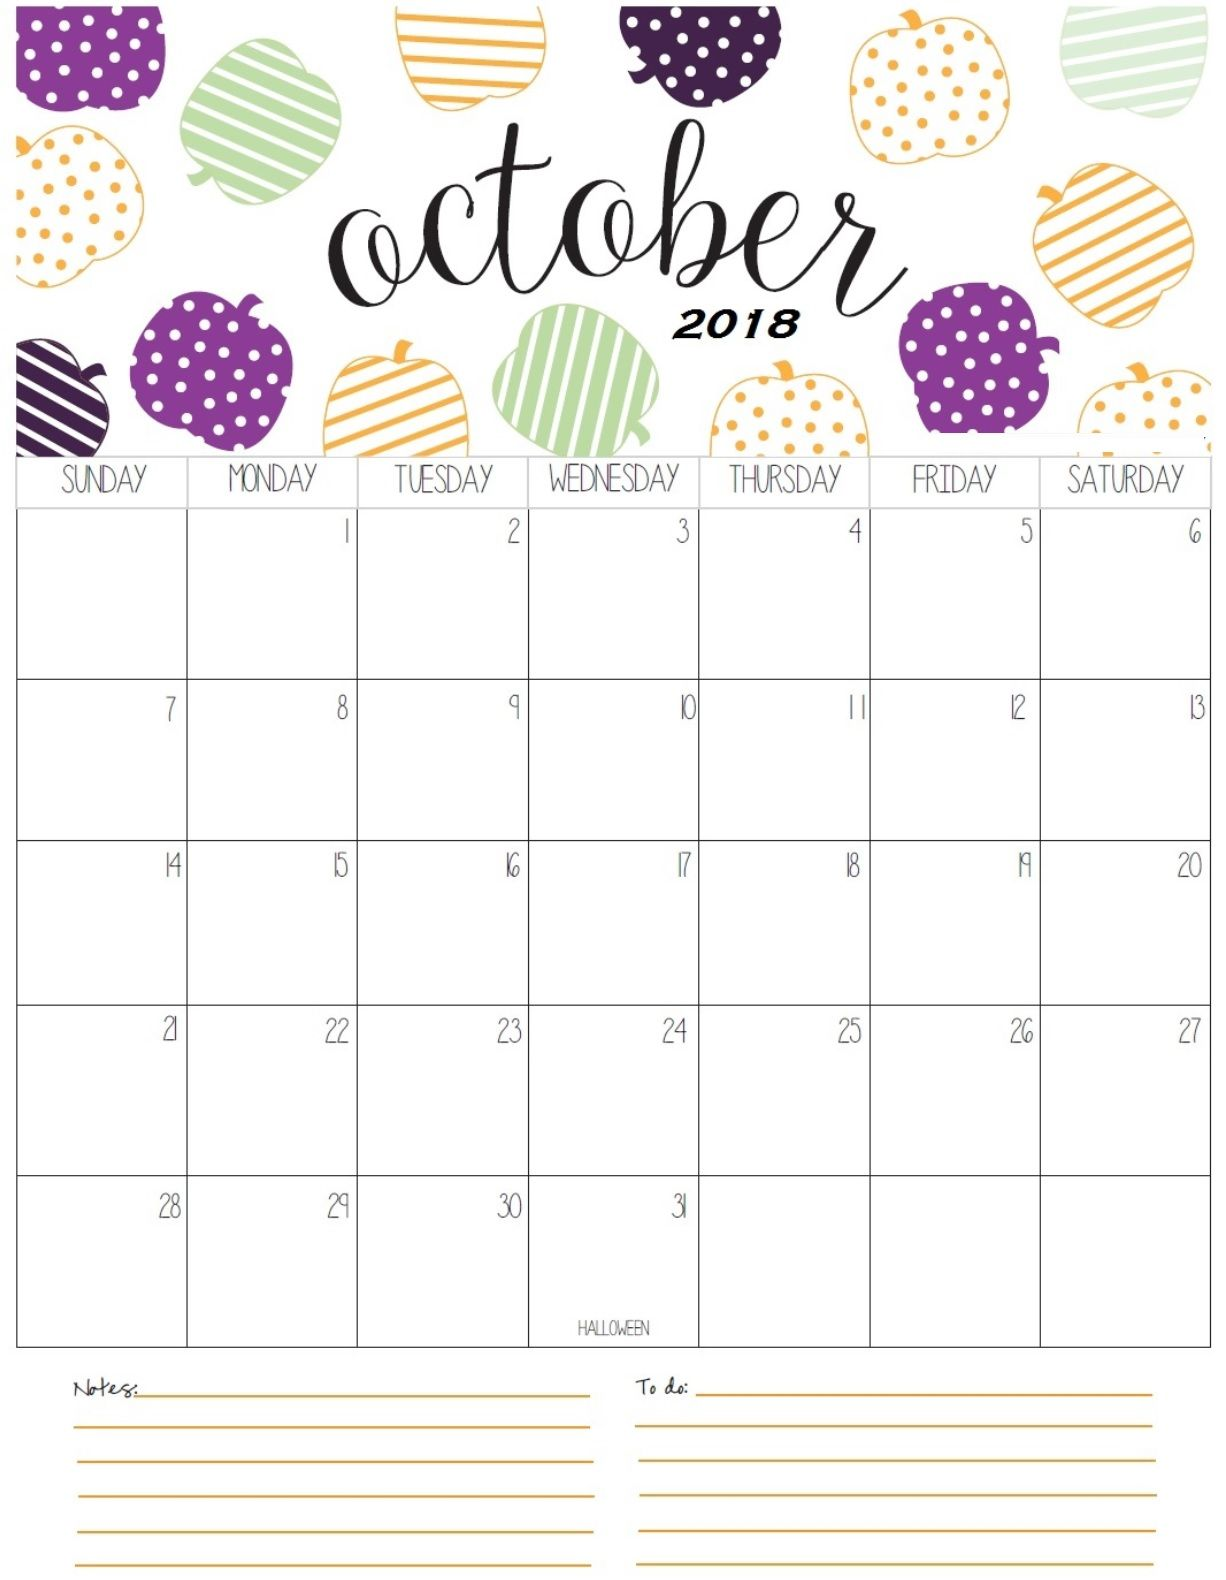 Cute October 2018 Calendar Images